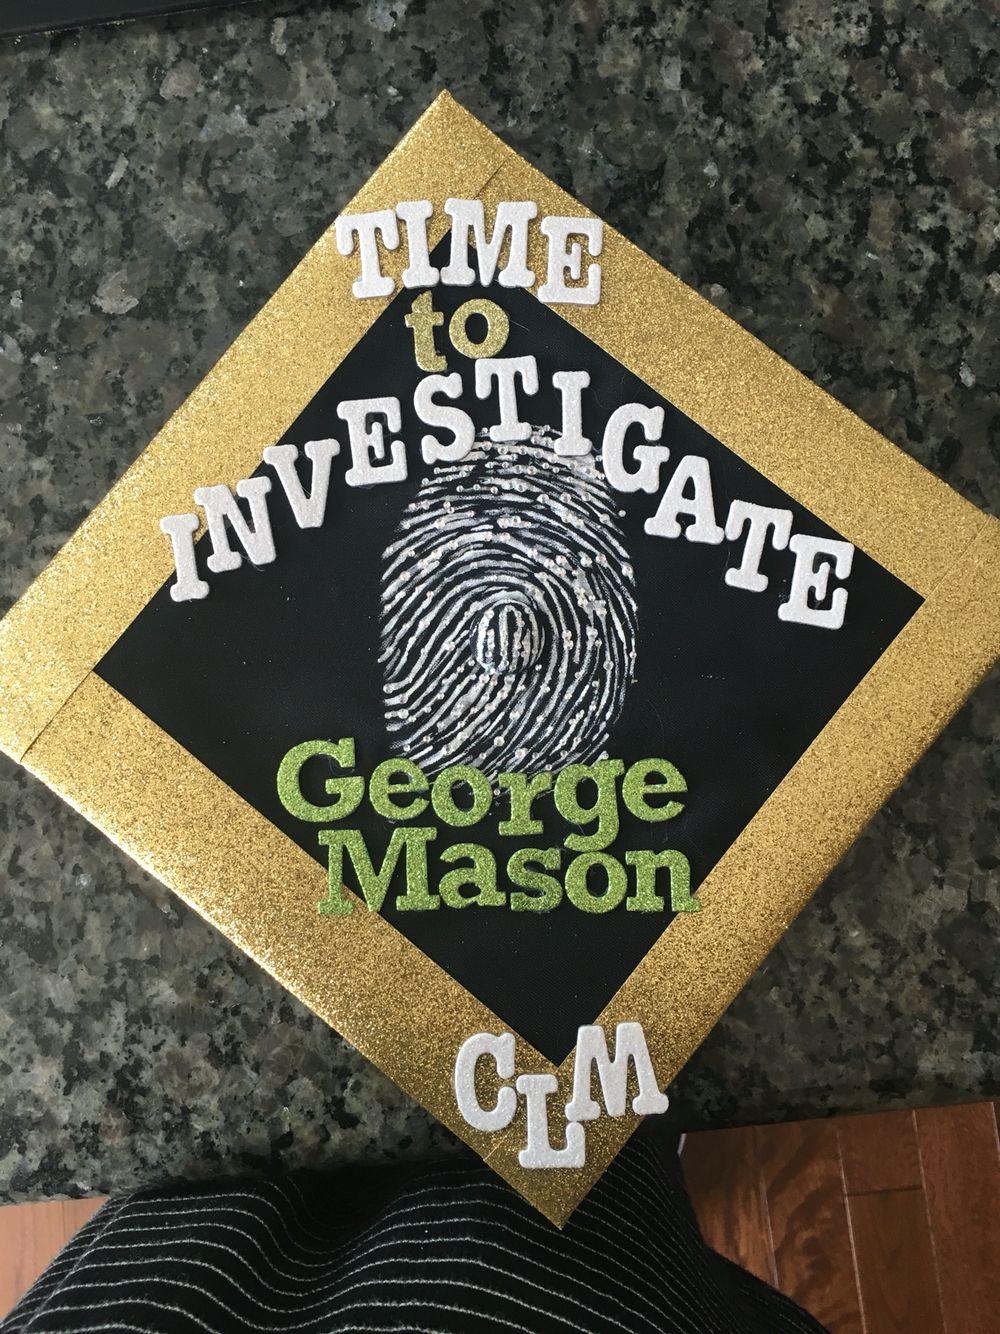 College criminal degree justice master science thesis write